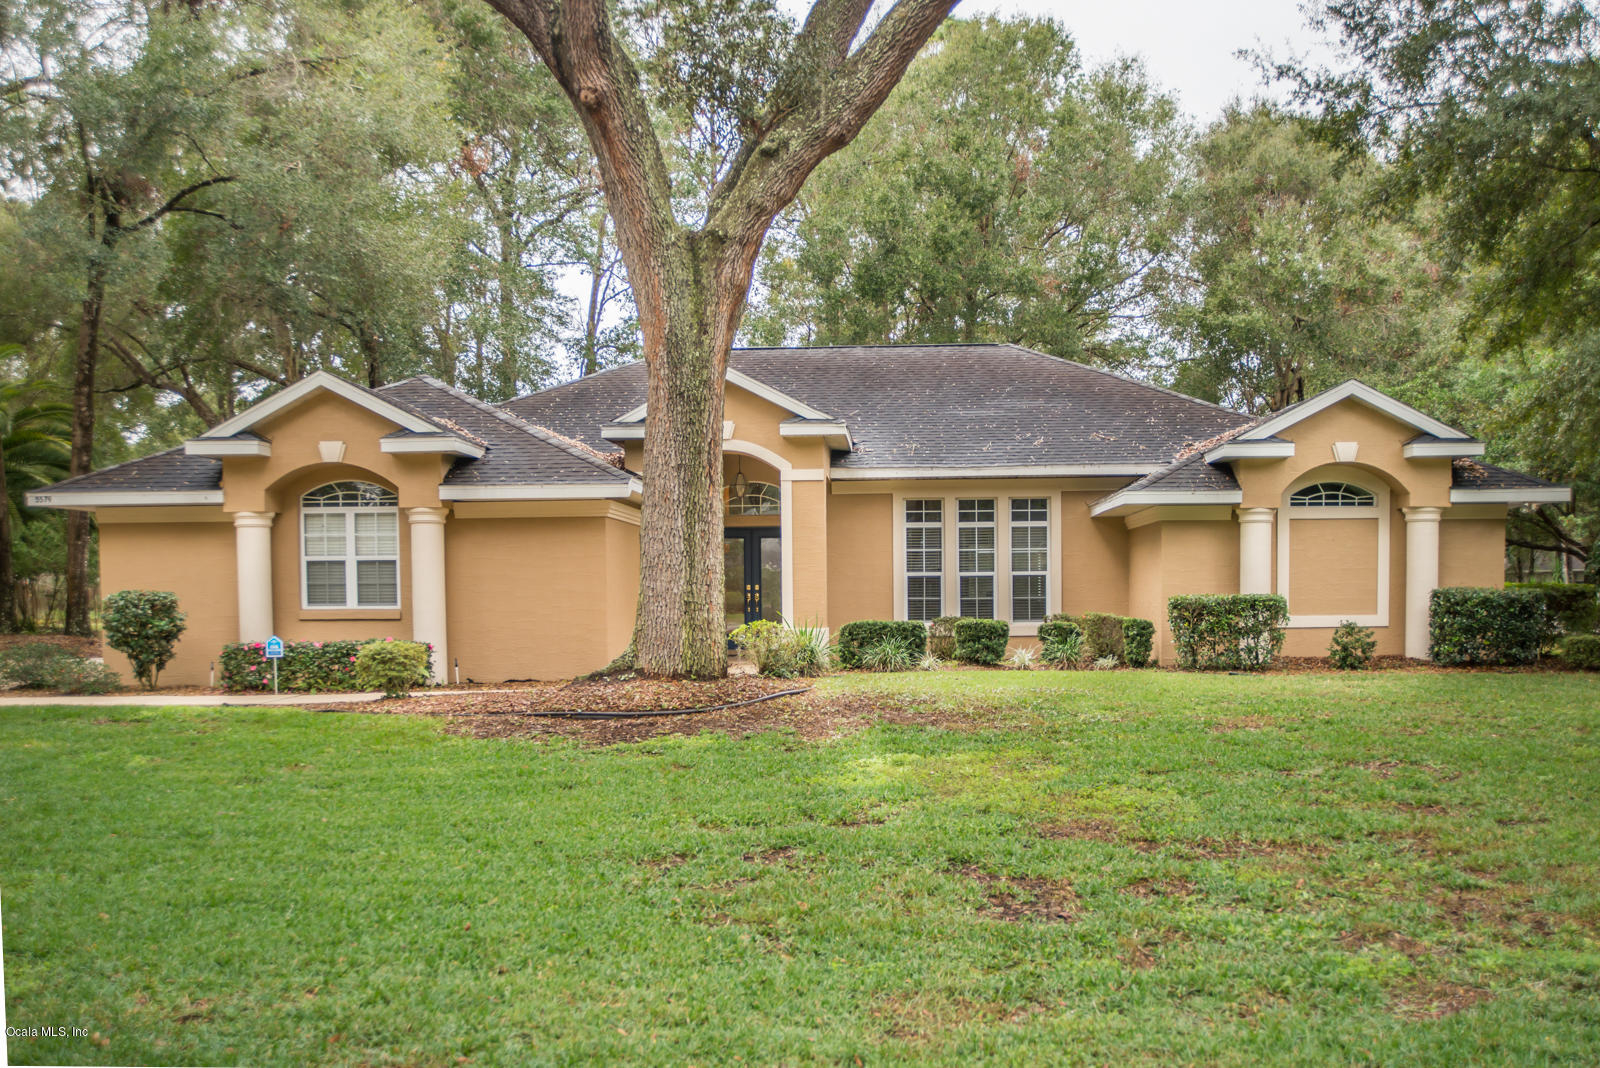 5579 SE 44TH CIRCLE, OCALA, FL 34480